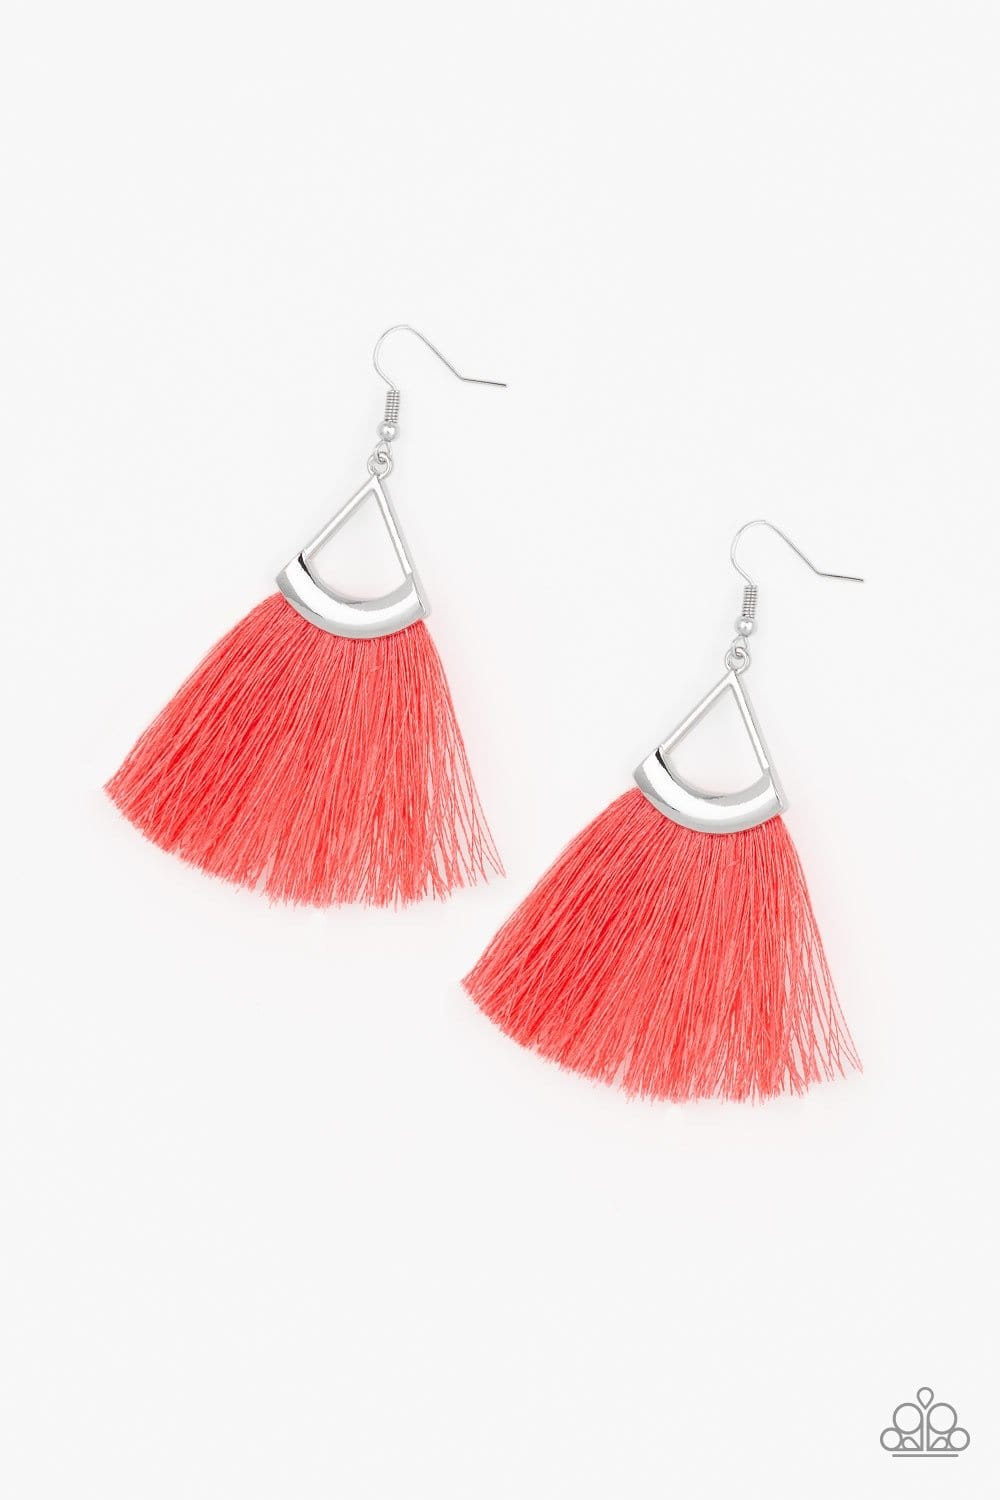 Tassel Tuesdays - Orange: Paparazzi Accessories - Jewels N' Thingz Boutique